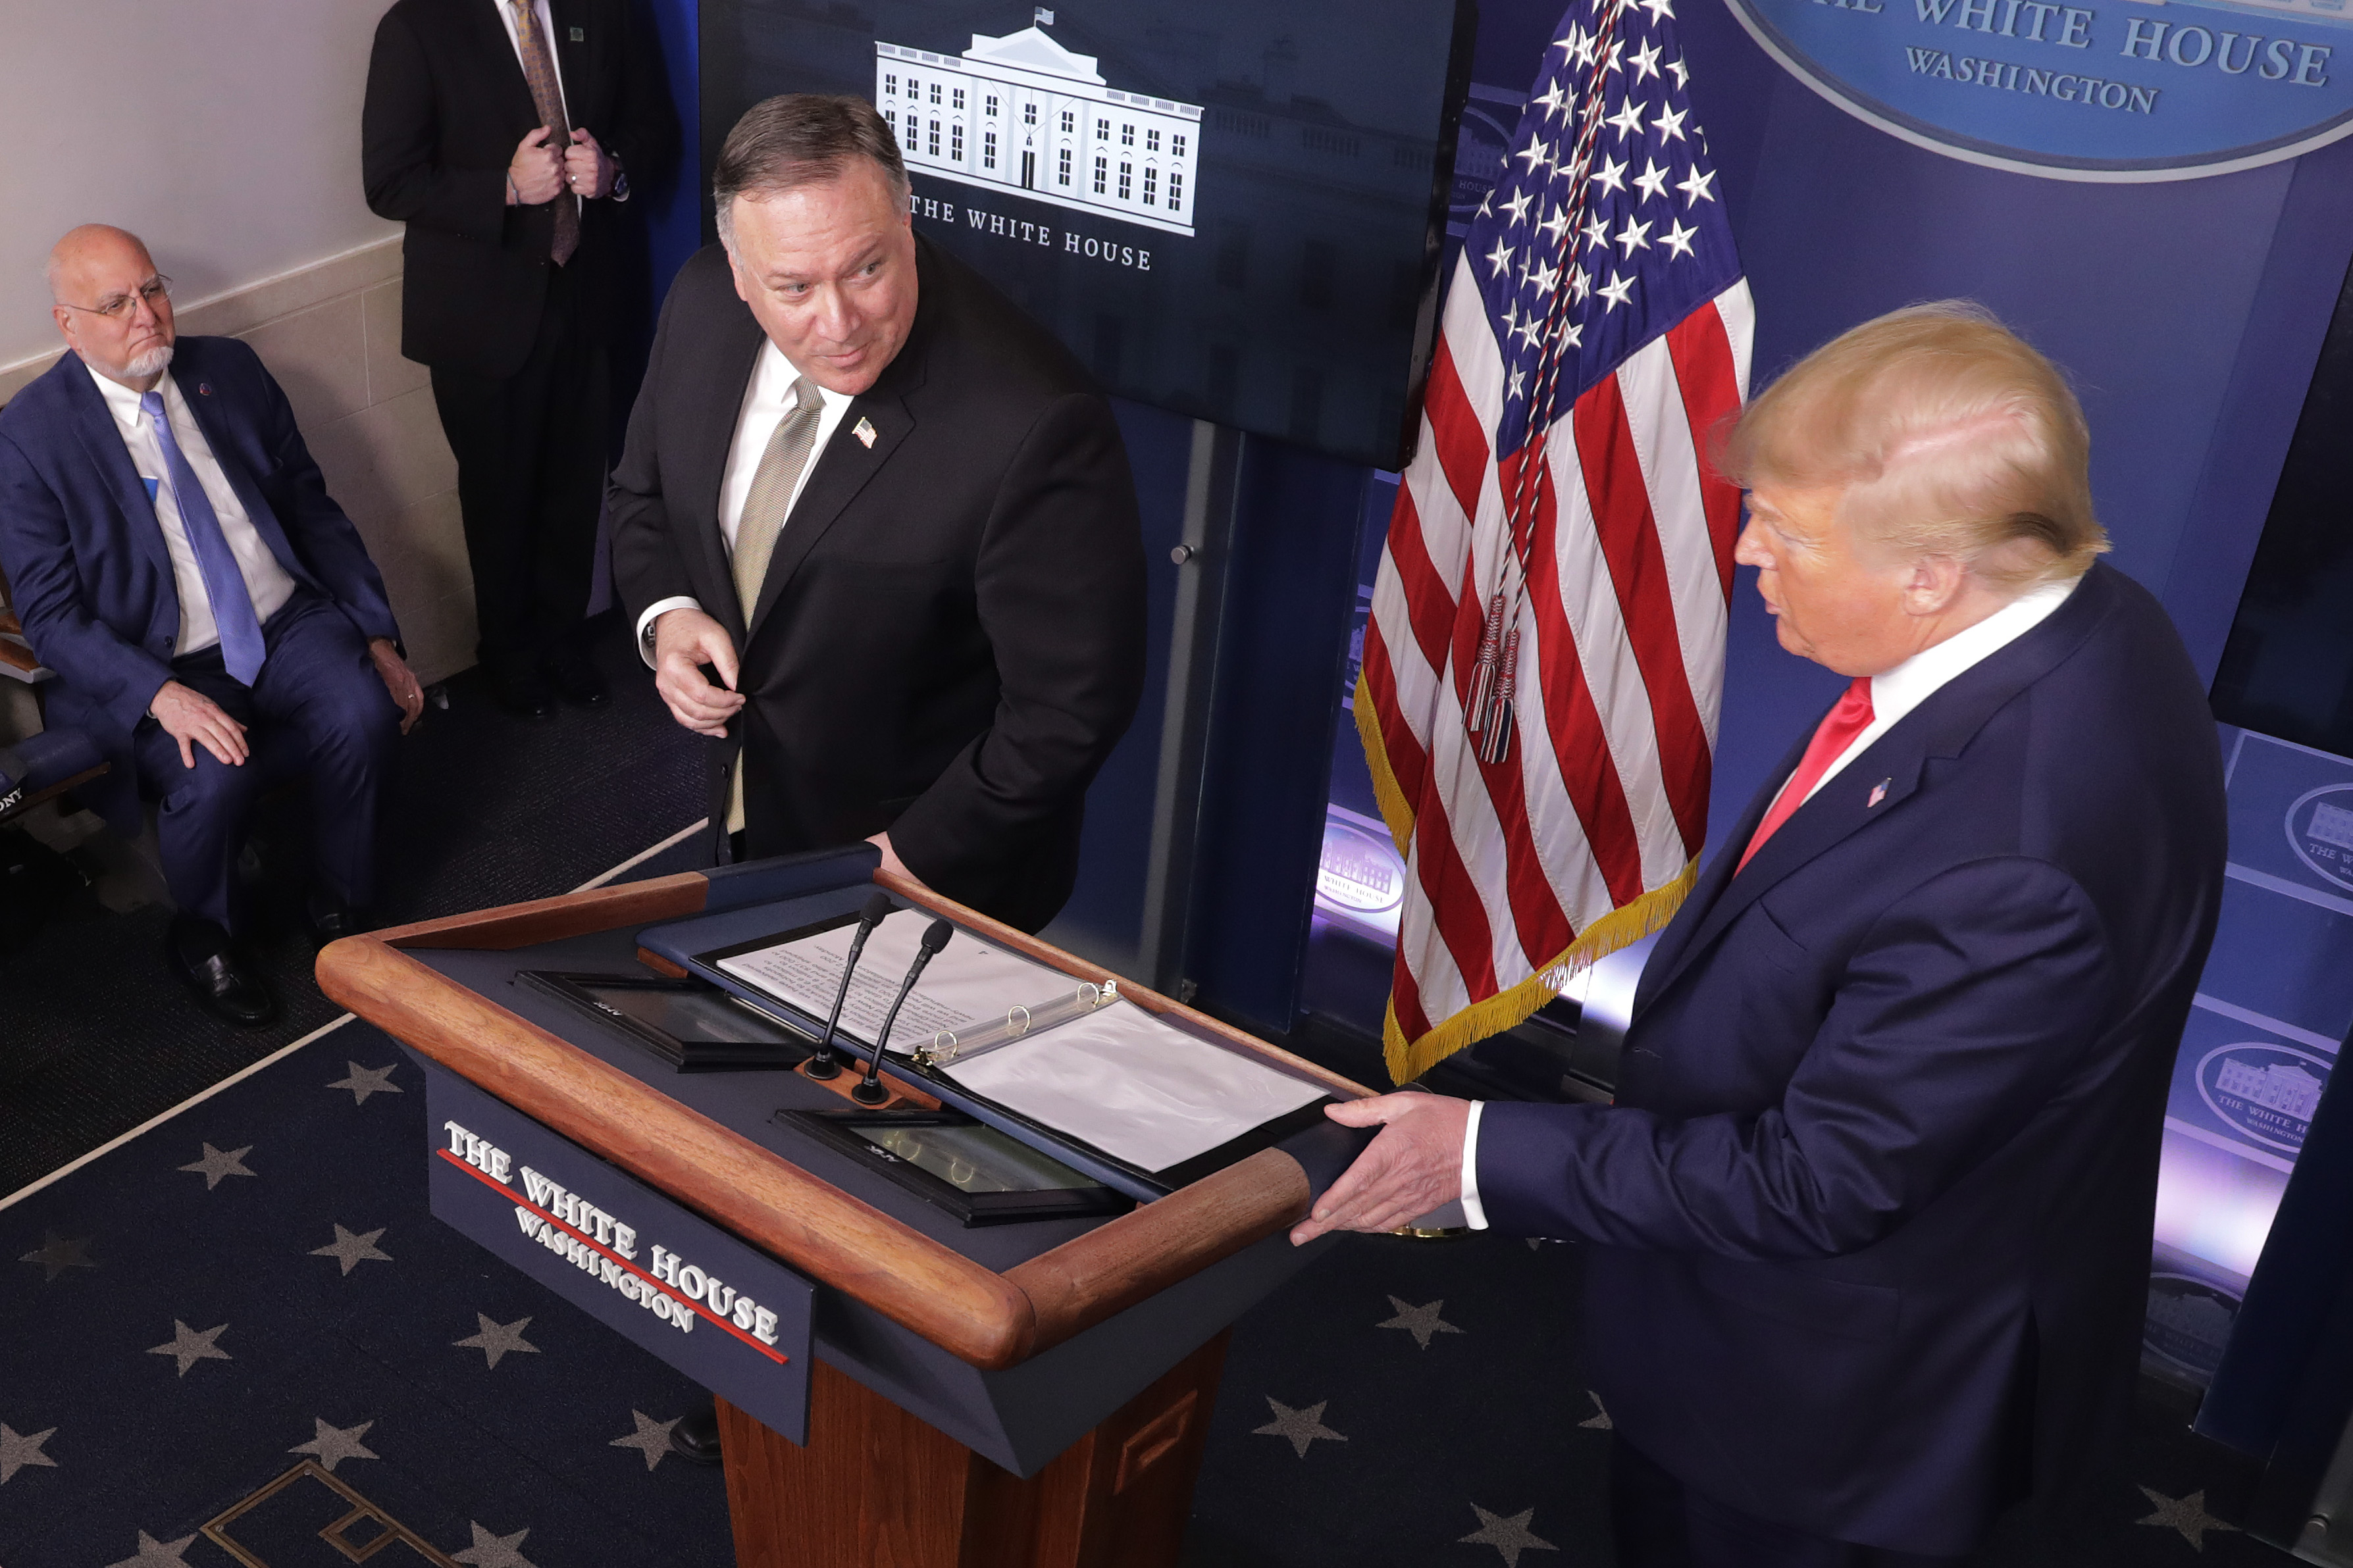 WASHINGTON, DC - APRIL 08: (L-R) Centers for Disease Control and Prevention Director Robert Redfield, Secretary of State Mike Pompeo and President Donald Trump participate in the daily coronavirus task force briefing in the Brady Press Briefing Room at the White House on April 08, 2020 in Washington, DC. President Trump vowed to hold back funding for the World Health Organization at the briefing, accusing the organization of having not been aggressive enough in confronting the virus, but later denied saying funding would be withheld, according to published reports. (Photo by Chip Somodevilla/Getty Images)